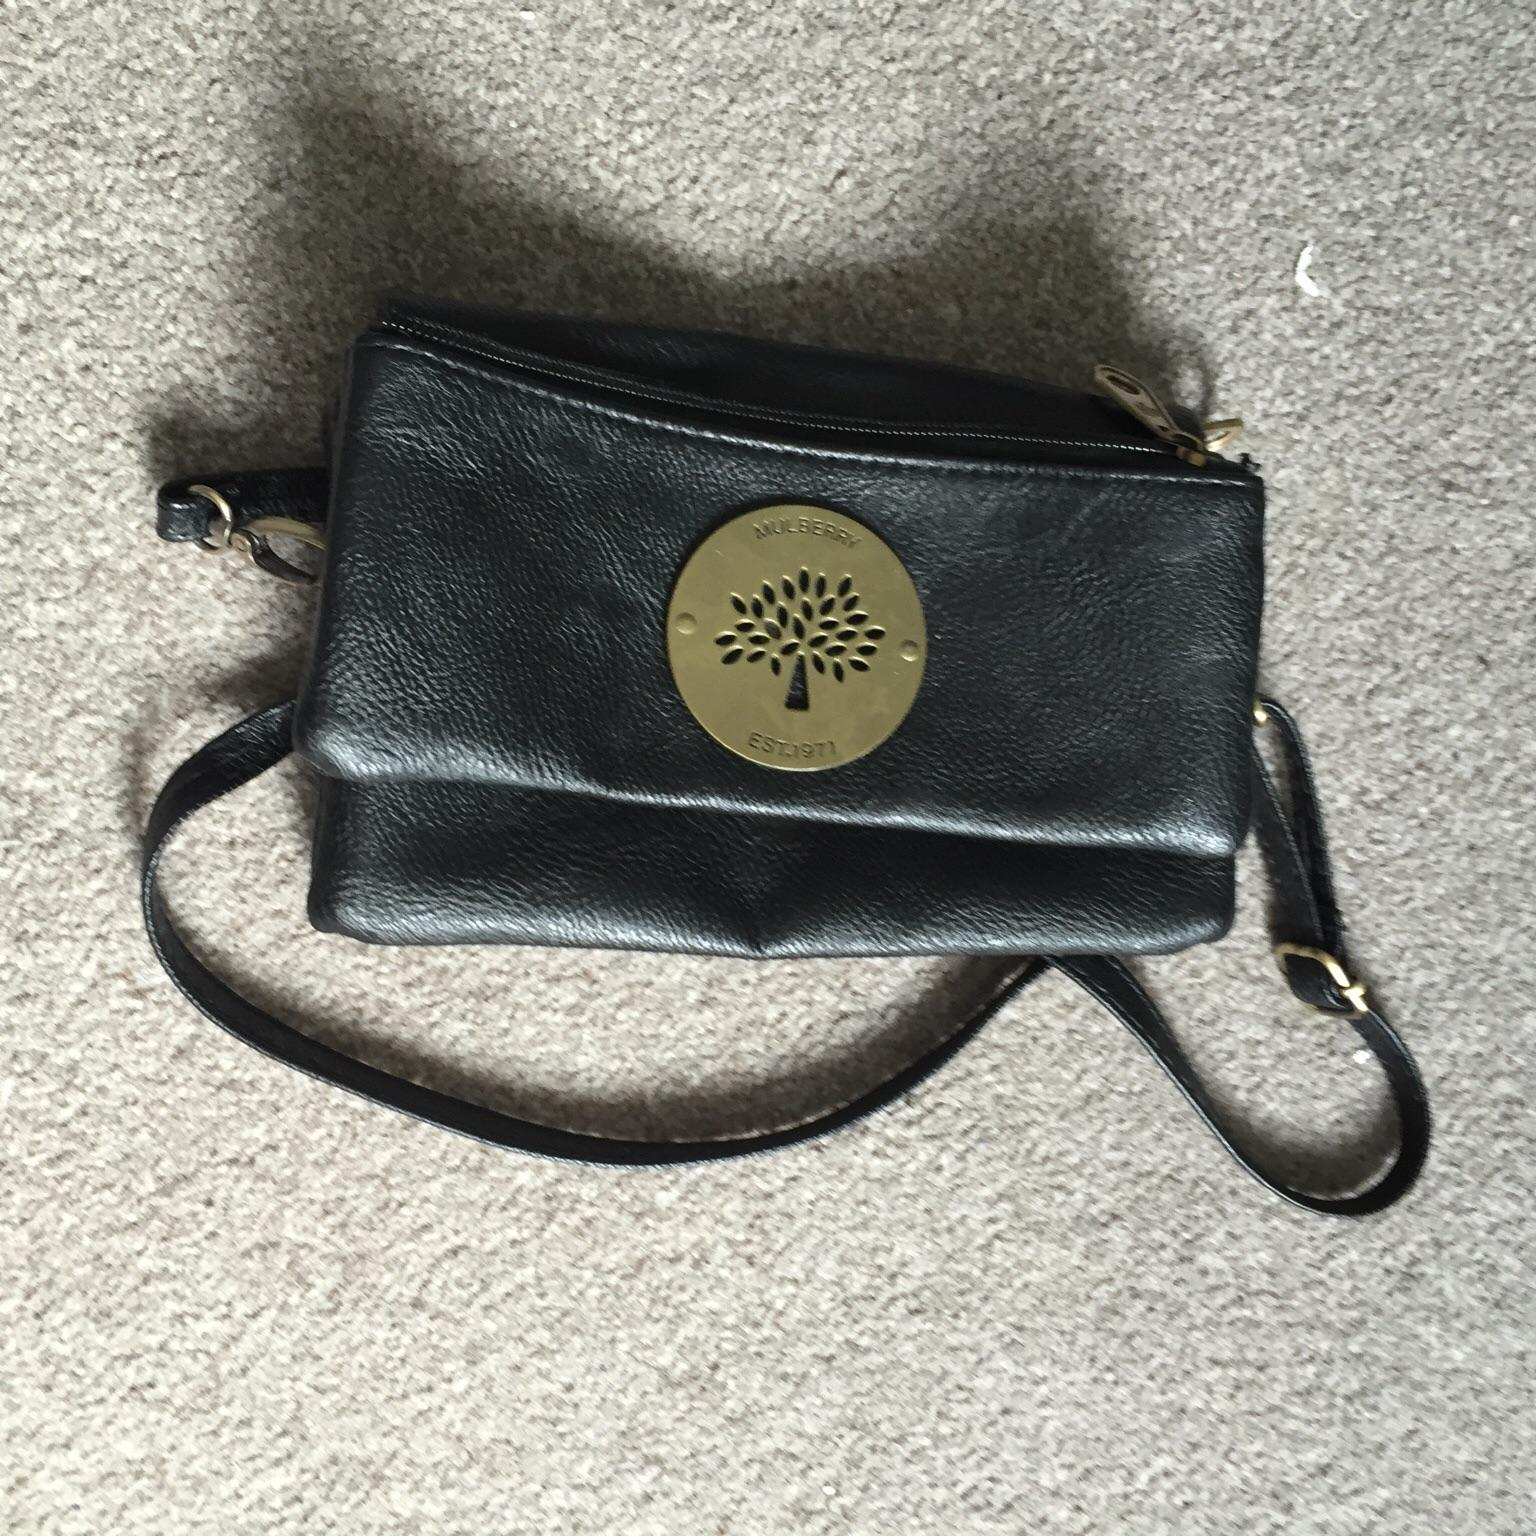 0791cc51f3b9 Lovely fake Mulberry small cross body bag in PE4 Peterborough for £10.00  for sale - Shpock